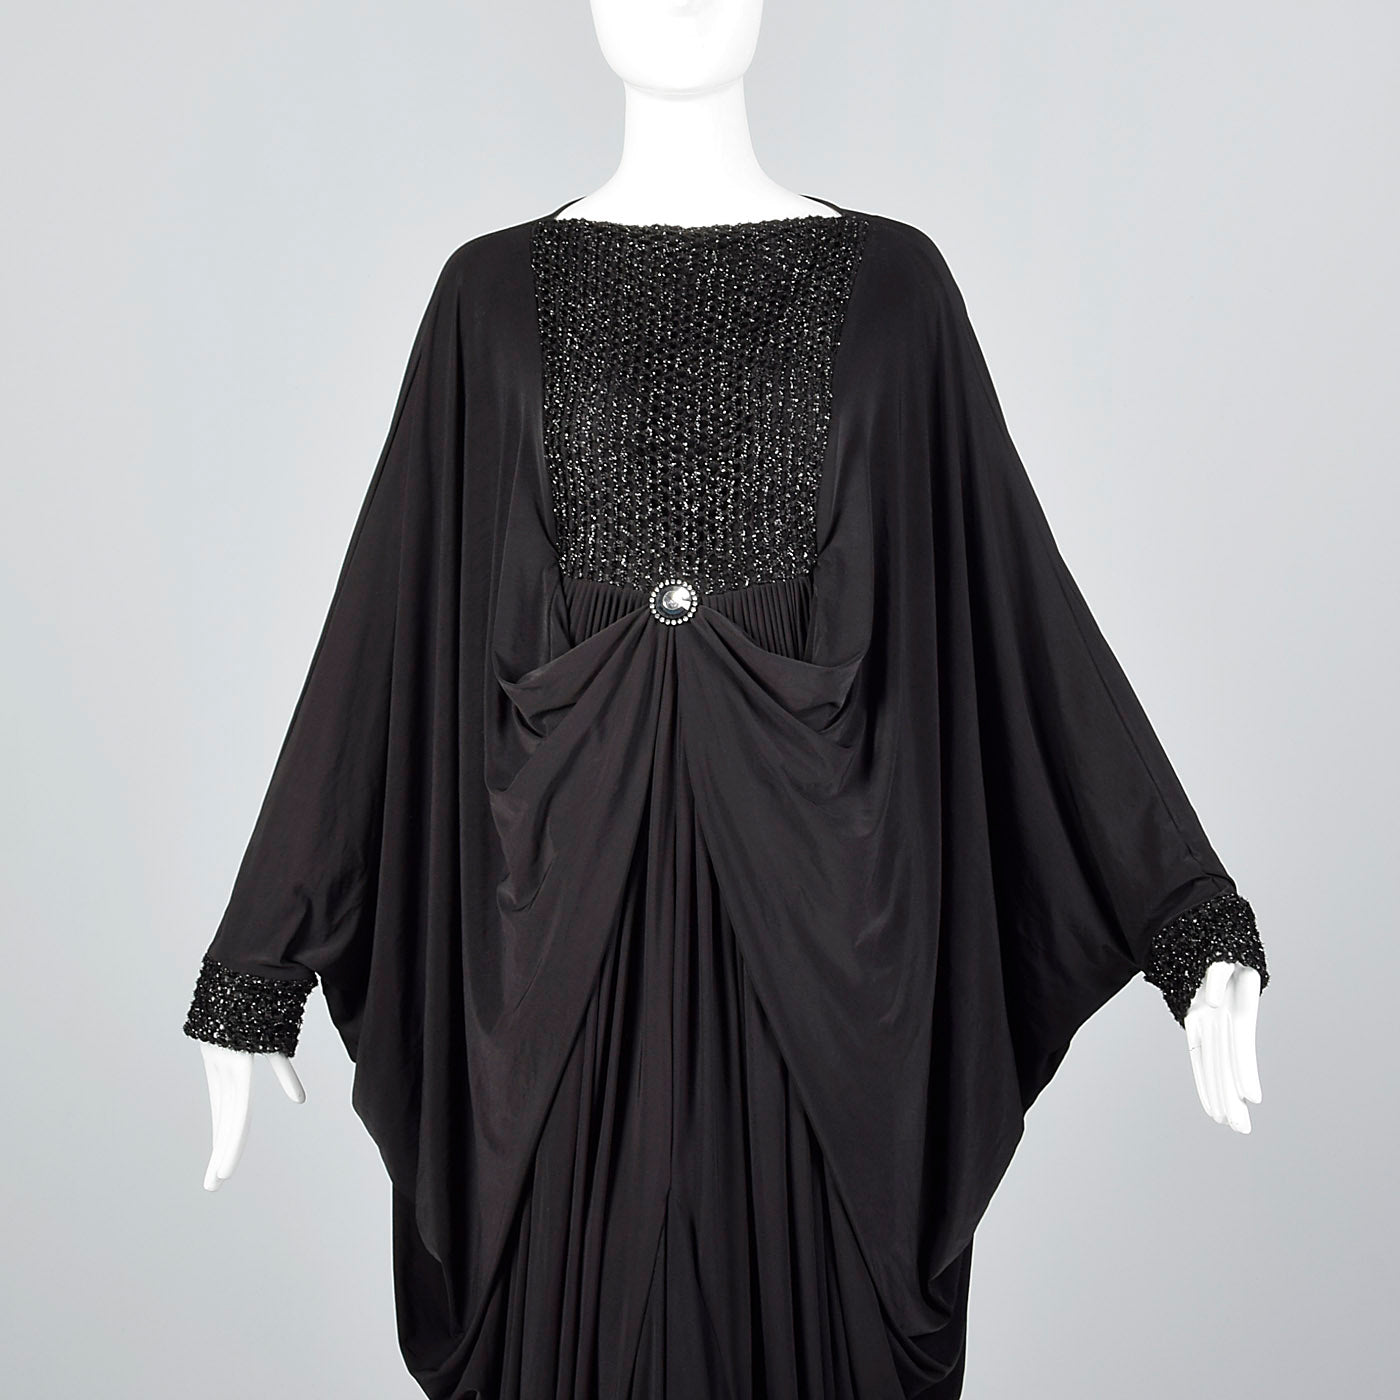 Extraordinary 1970s Black Jersey Cocoon Dress with Incredible Draping